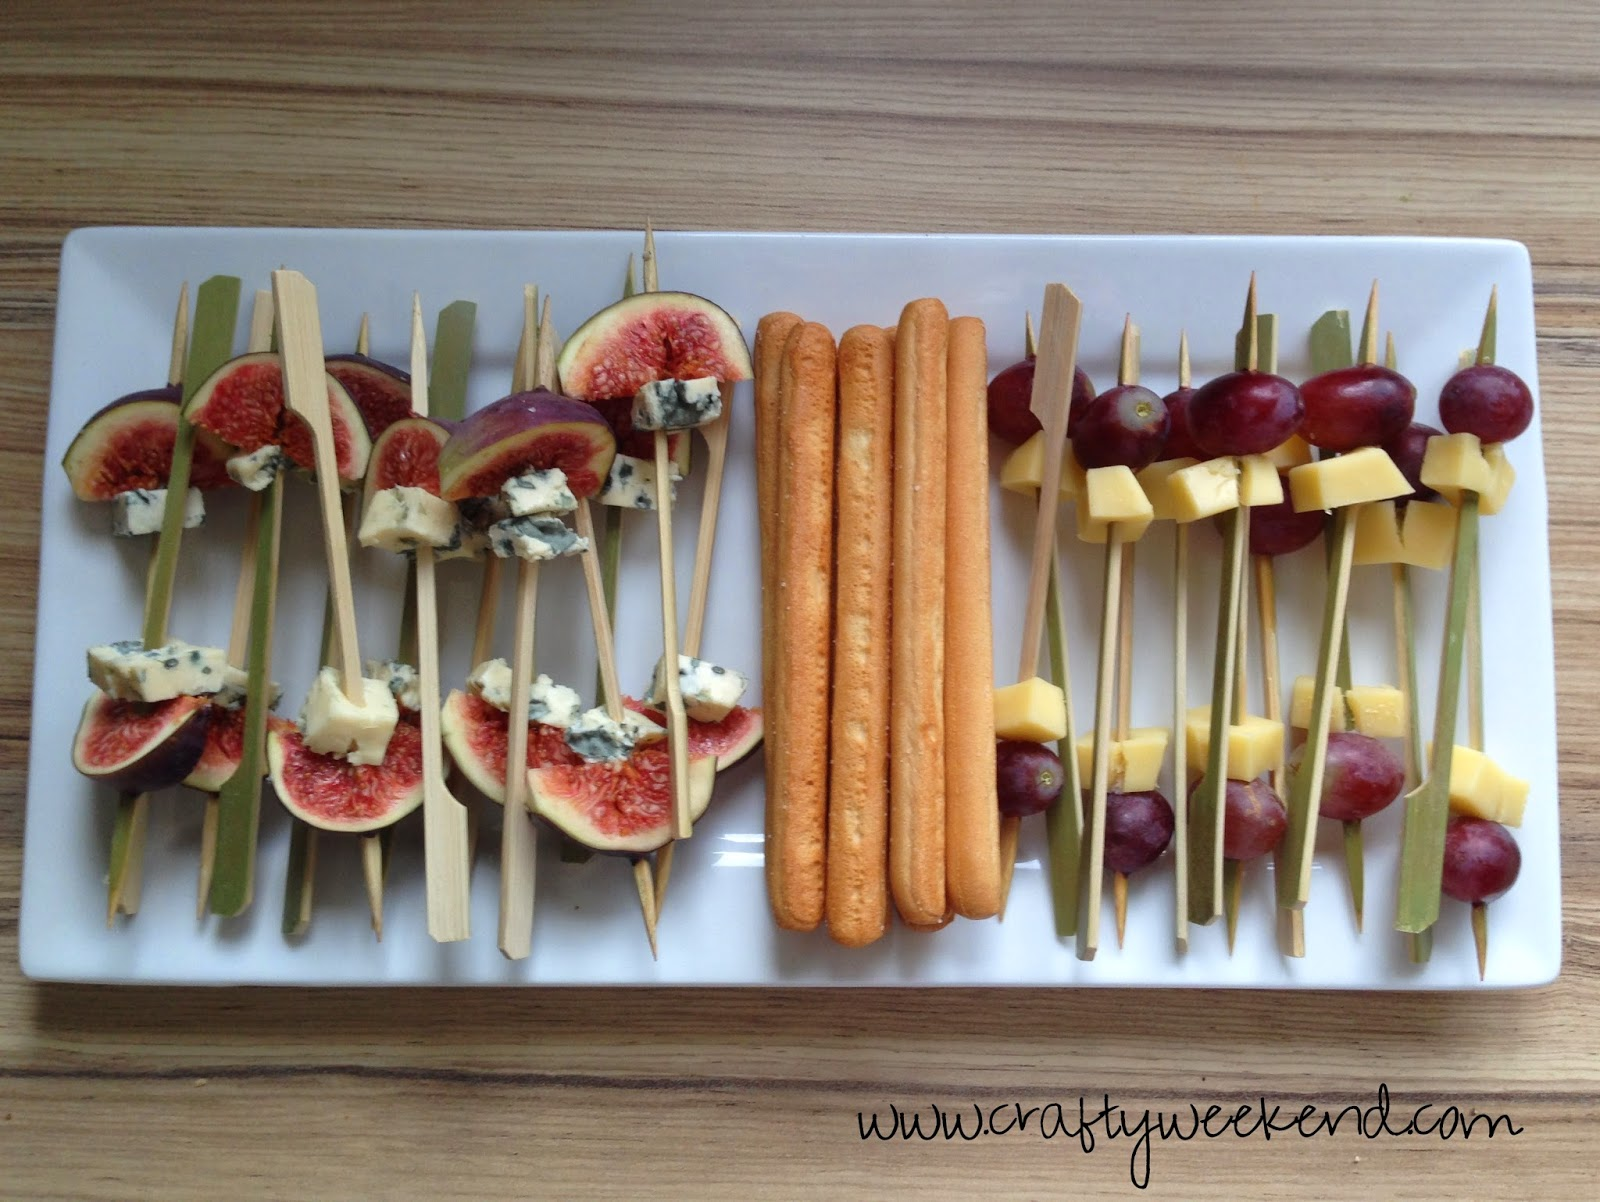 Canapé Sunday But Canapé Sunday But Easy Dinner Party Canapes Crafty